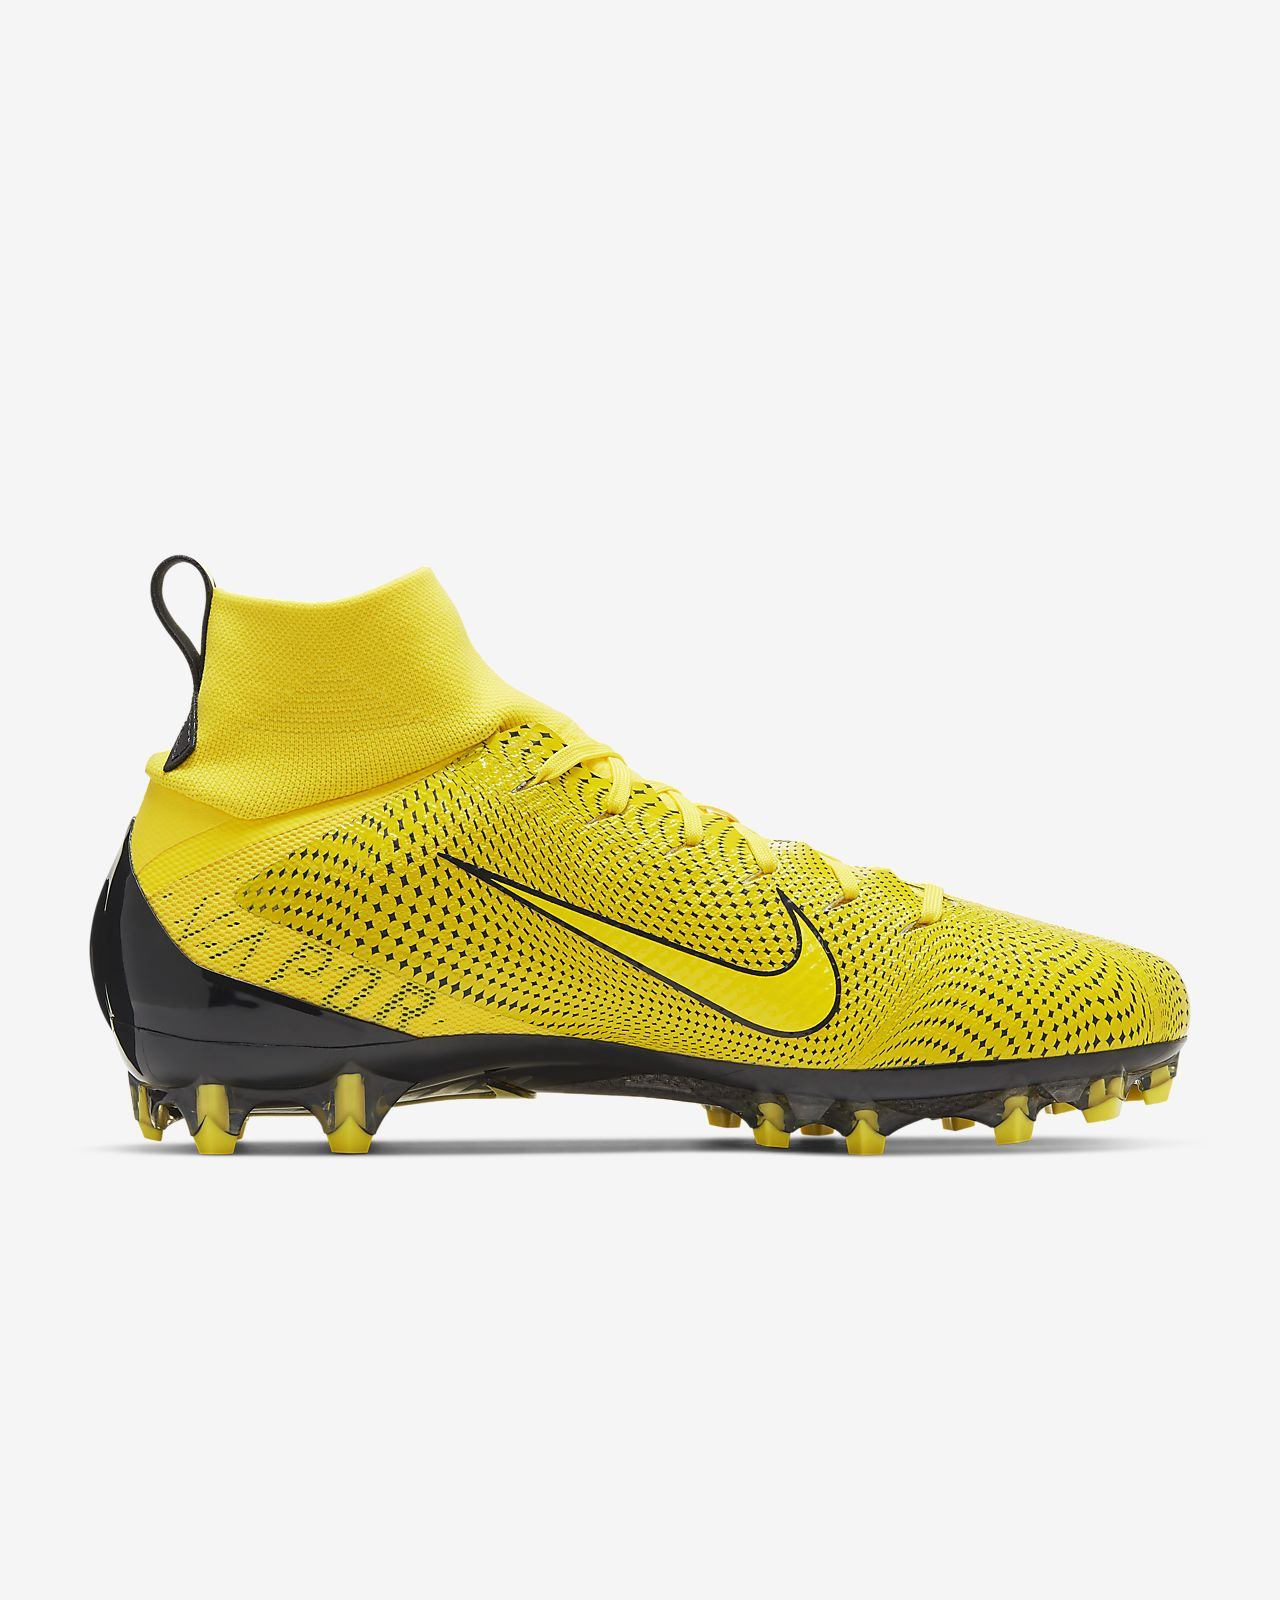 8fb86c19184b Nike Vapor Untouchable 3 Pro Football Cleat. Nike.com